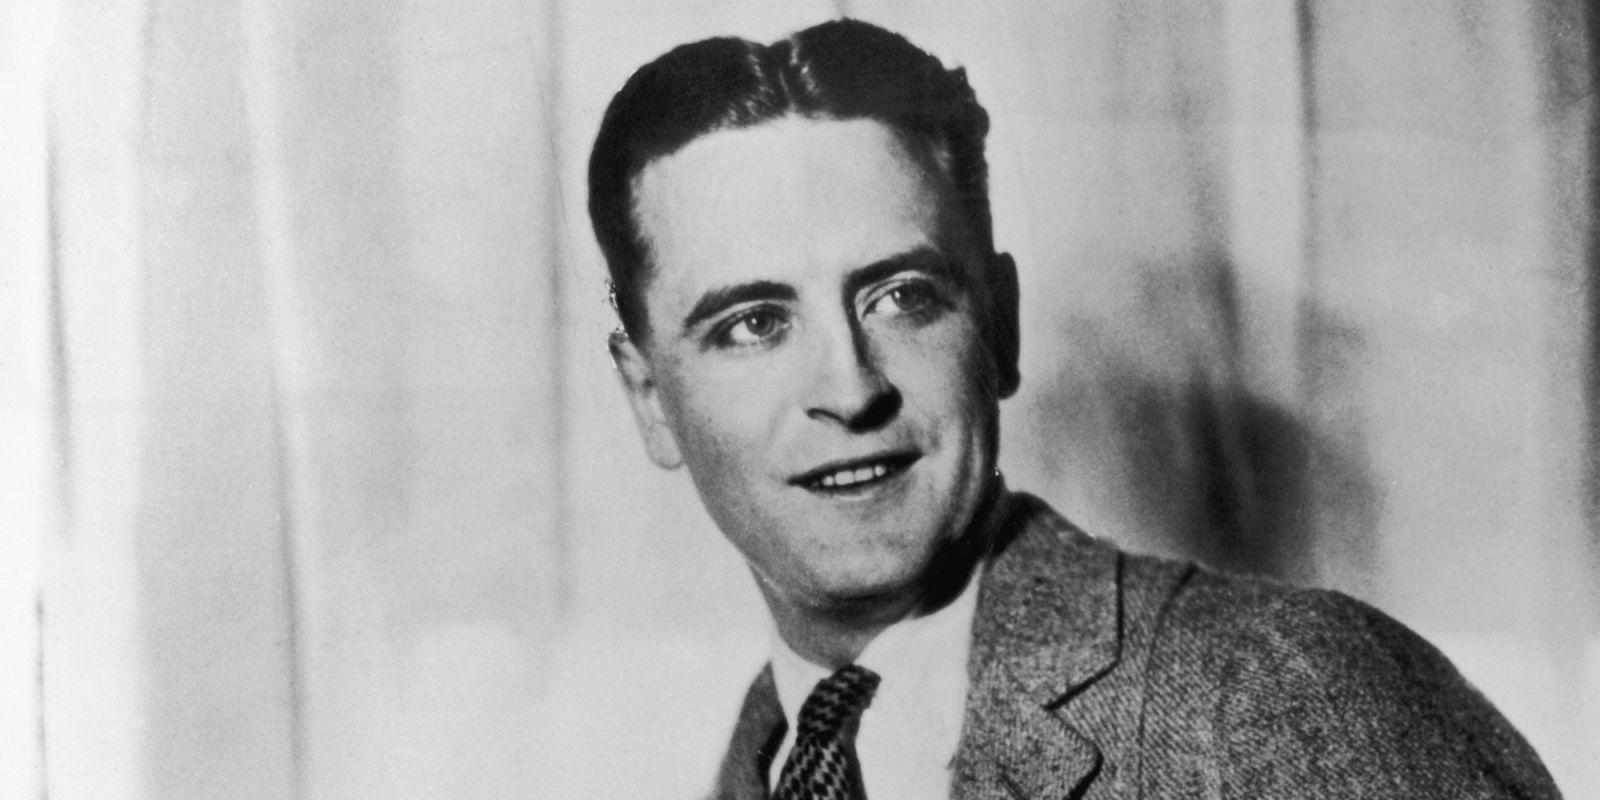 f scott fitzgerald s history at esquire